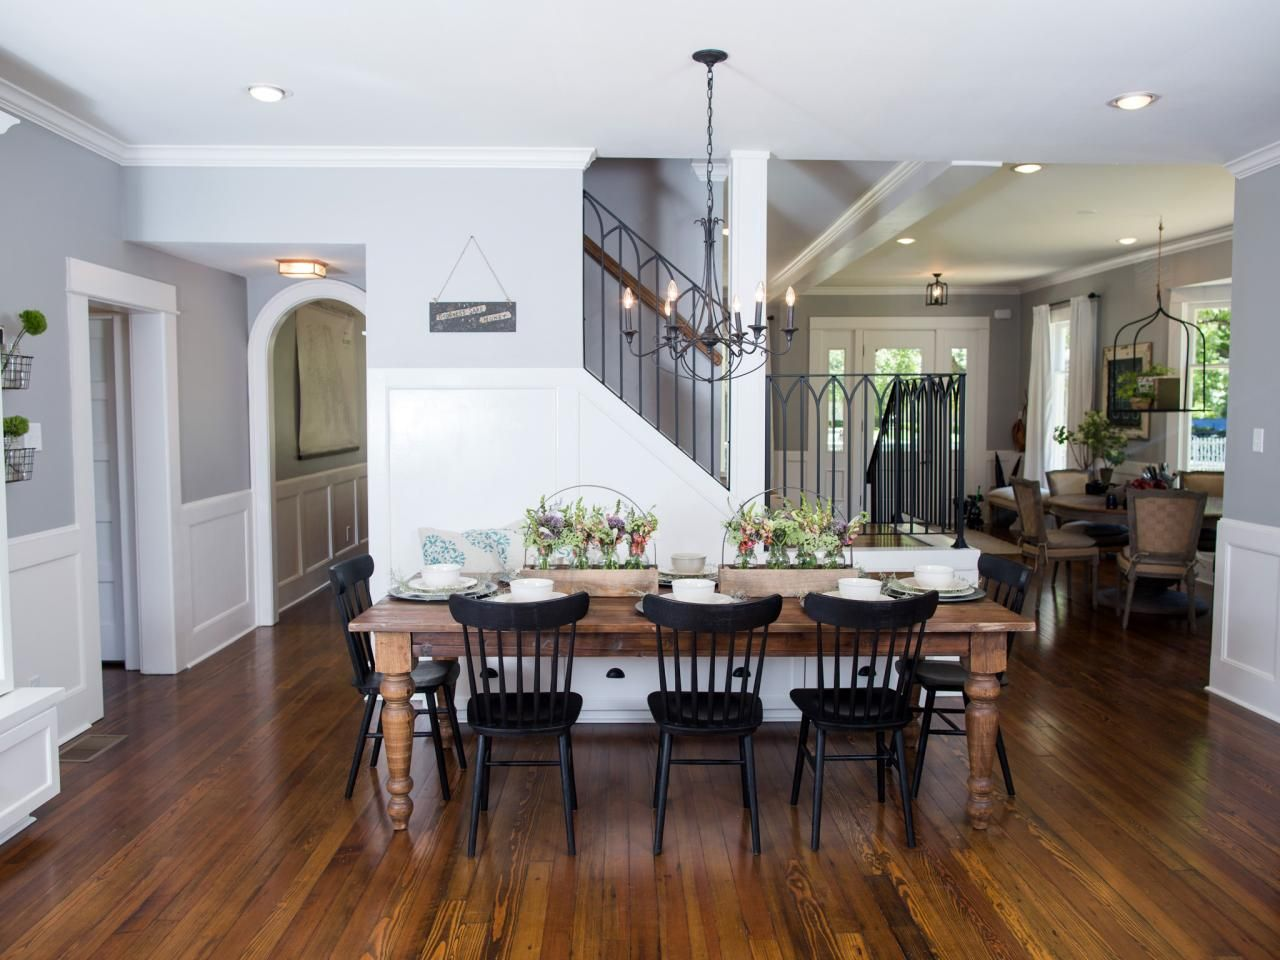 Fixer upper kitchen chairs - Find The Best Of Hgtv S Fixer Upper With Chip And Joanna Gaines From Hgtv